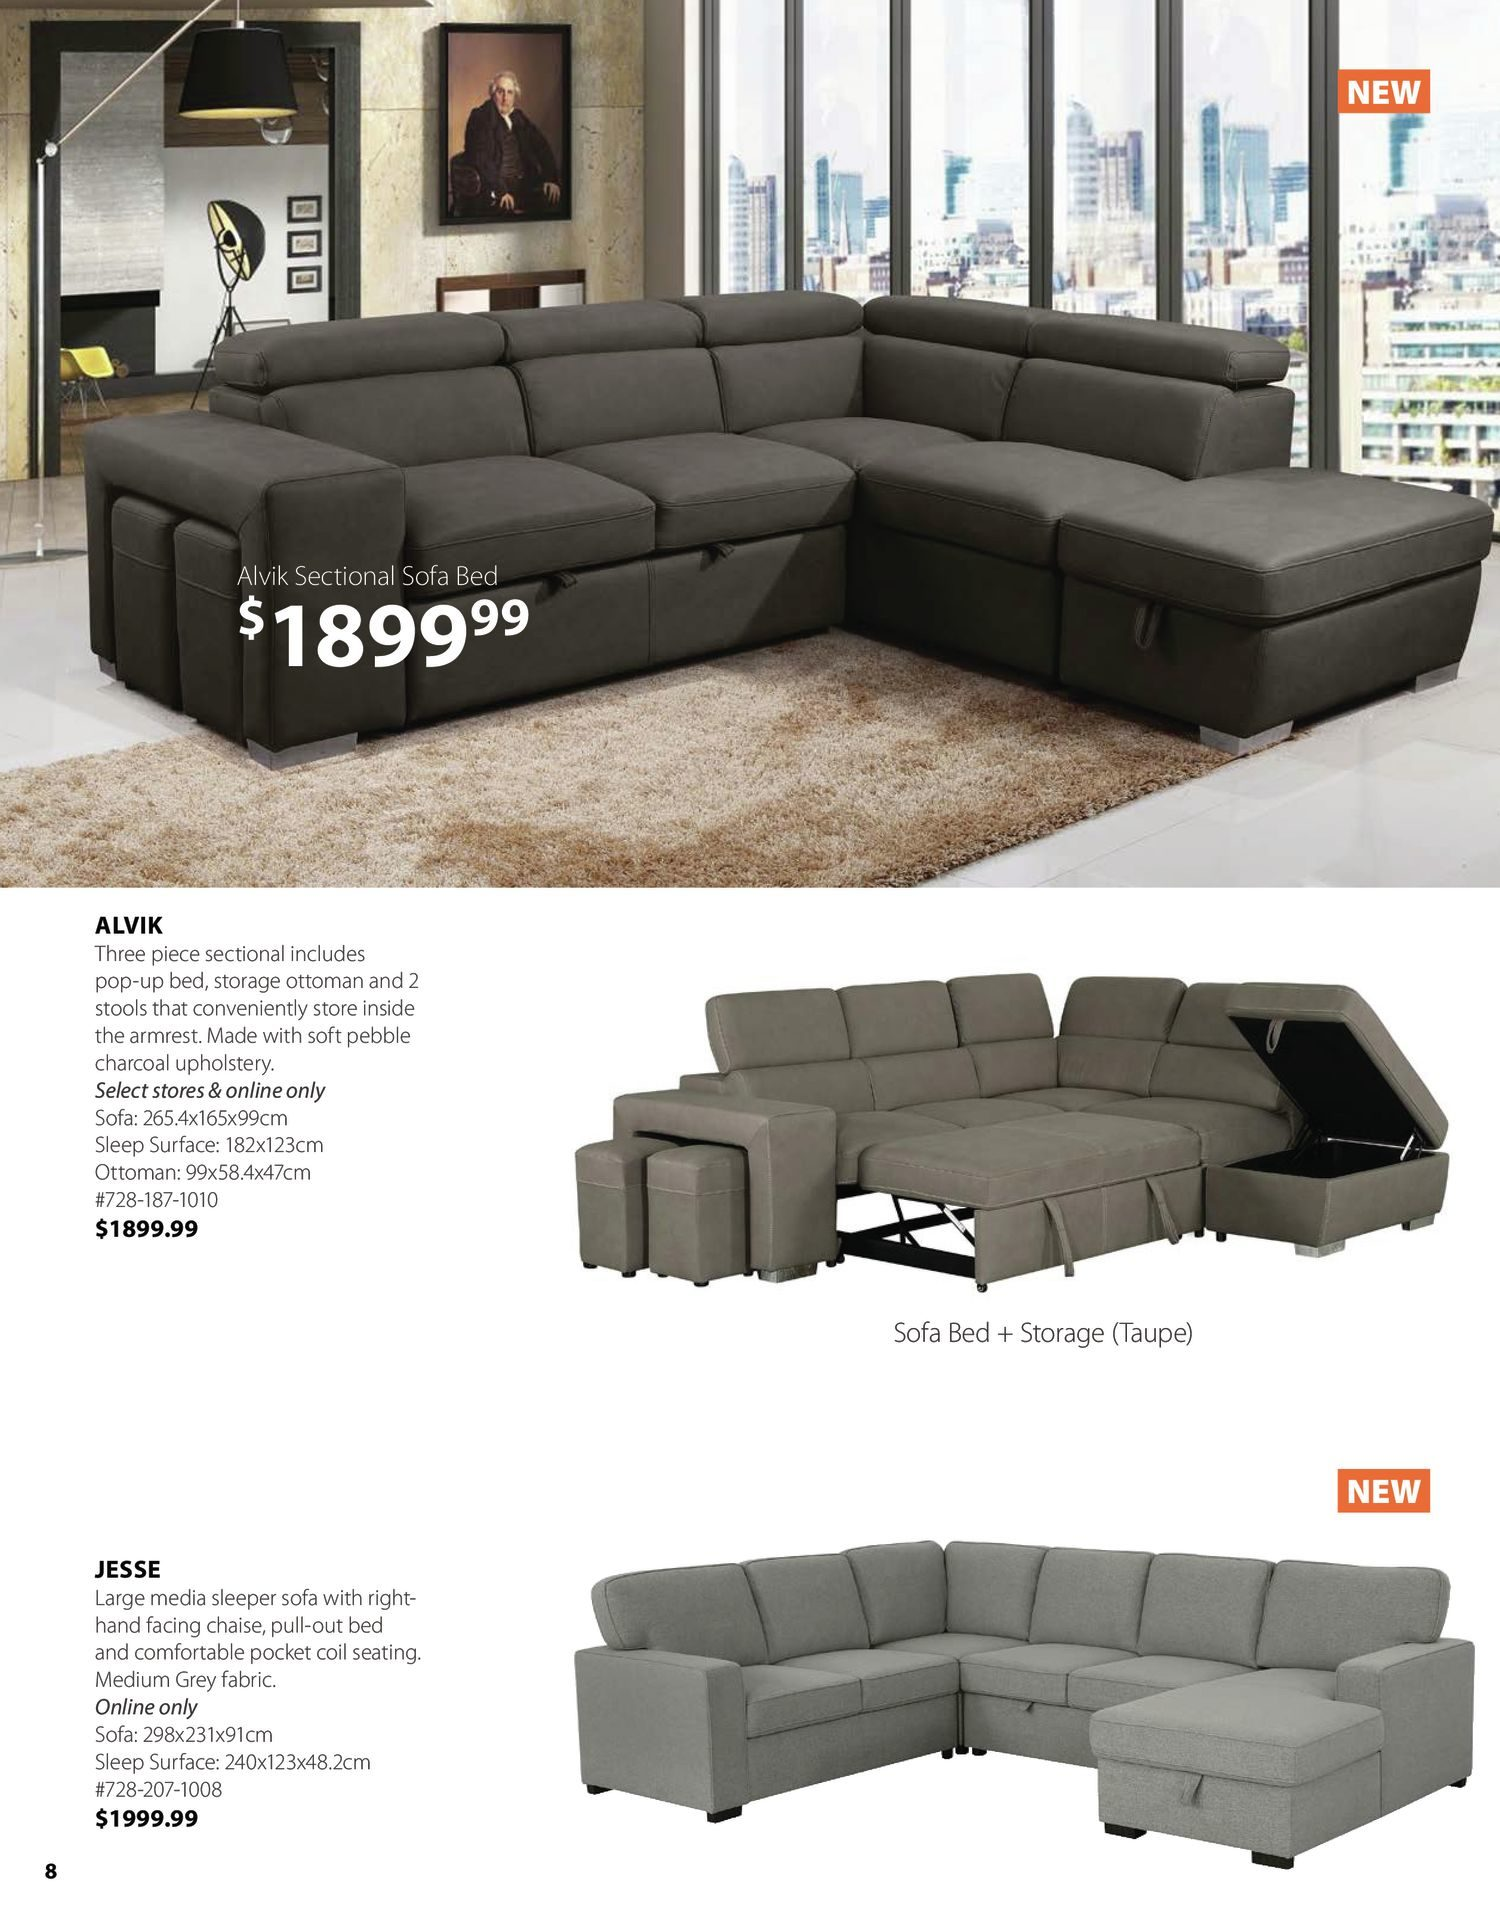 Jysk - Furniture Catalogue - Be Inspired - Page 8